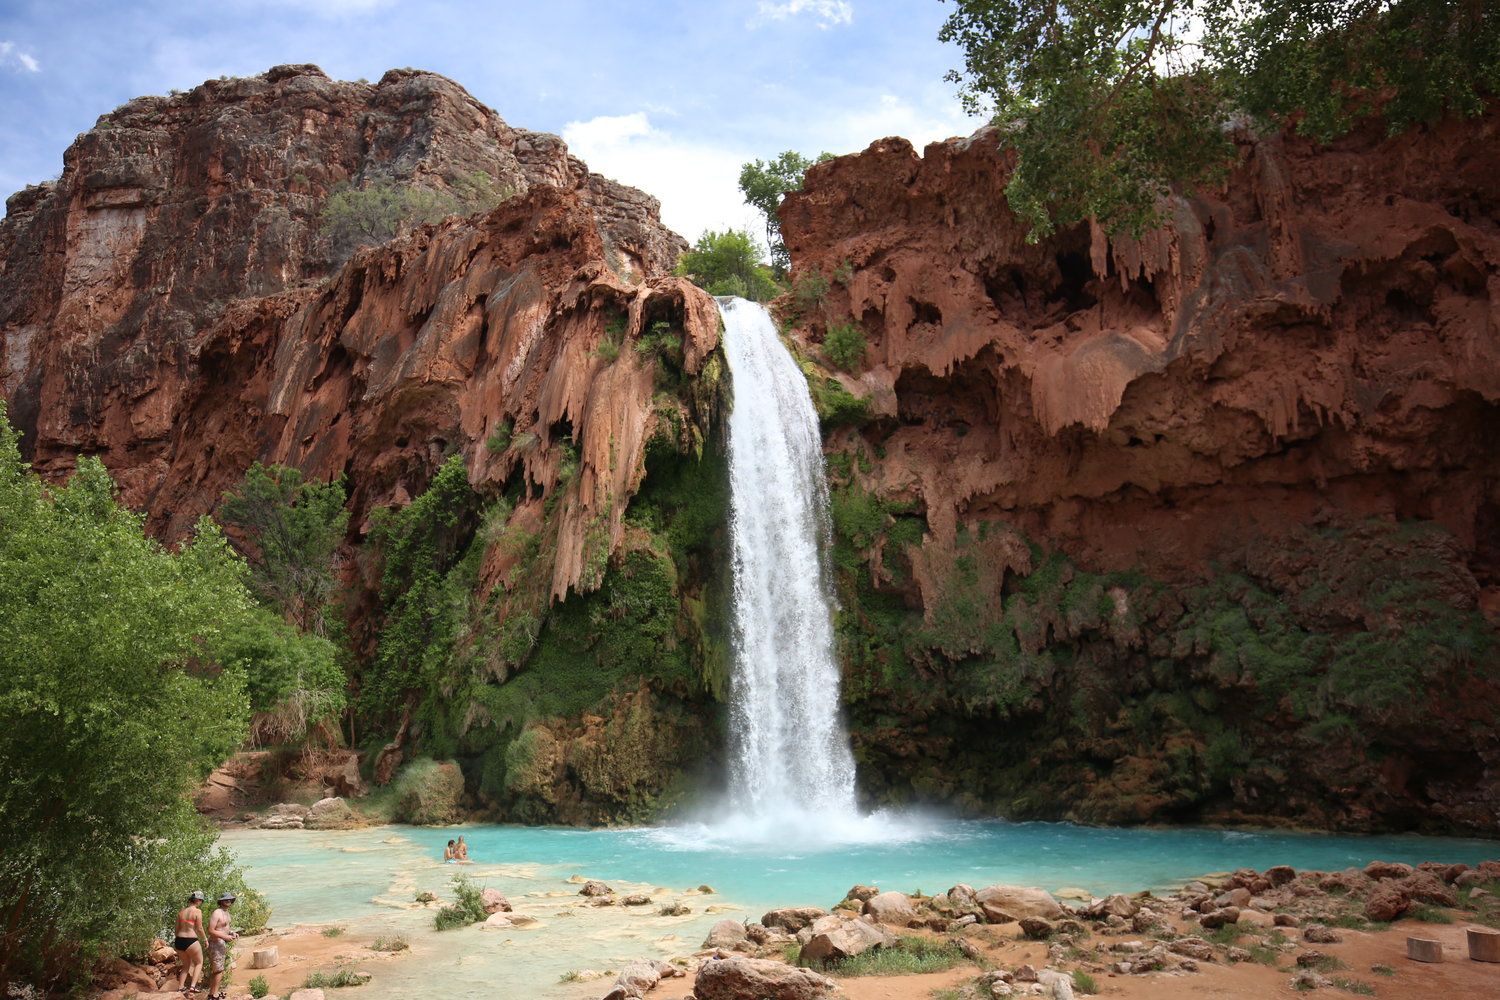 SWIMMING AT HAVASUPAI